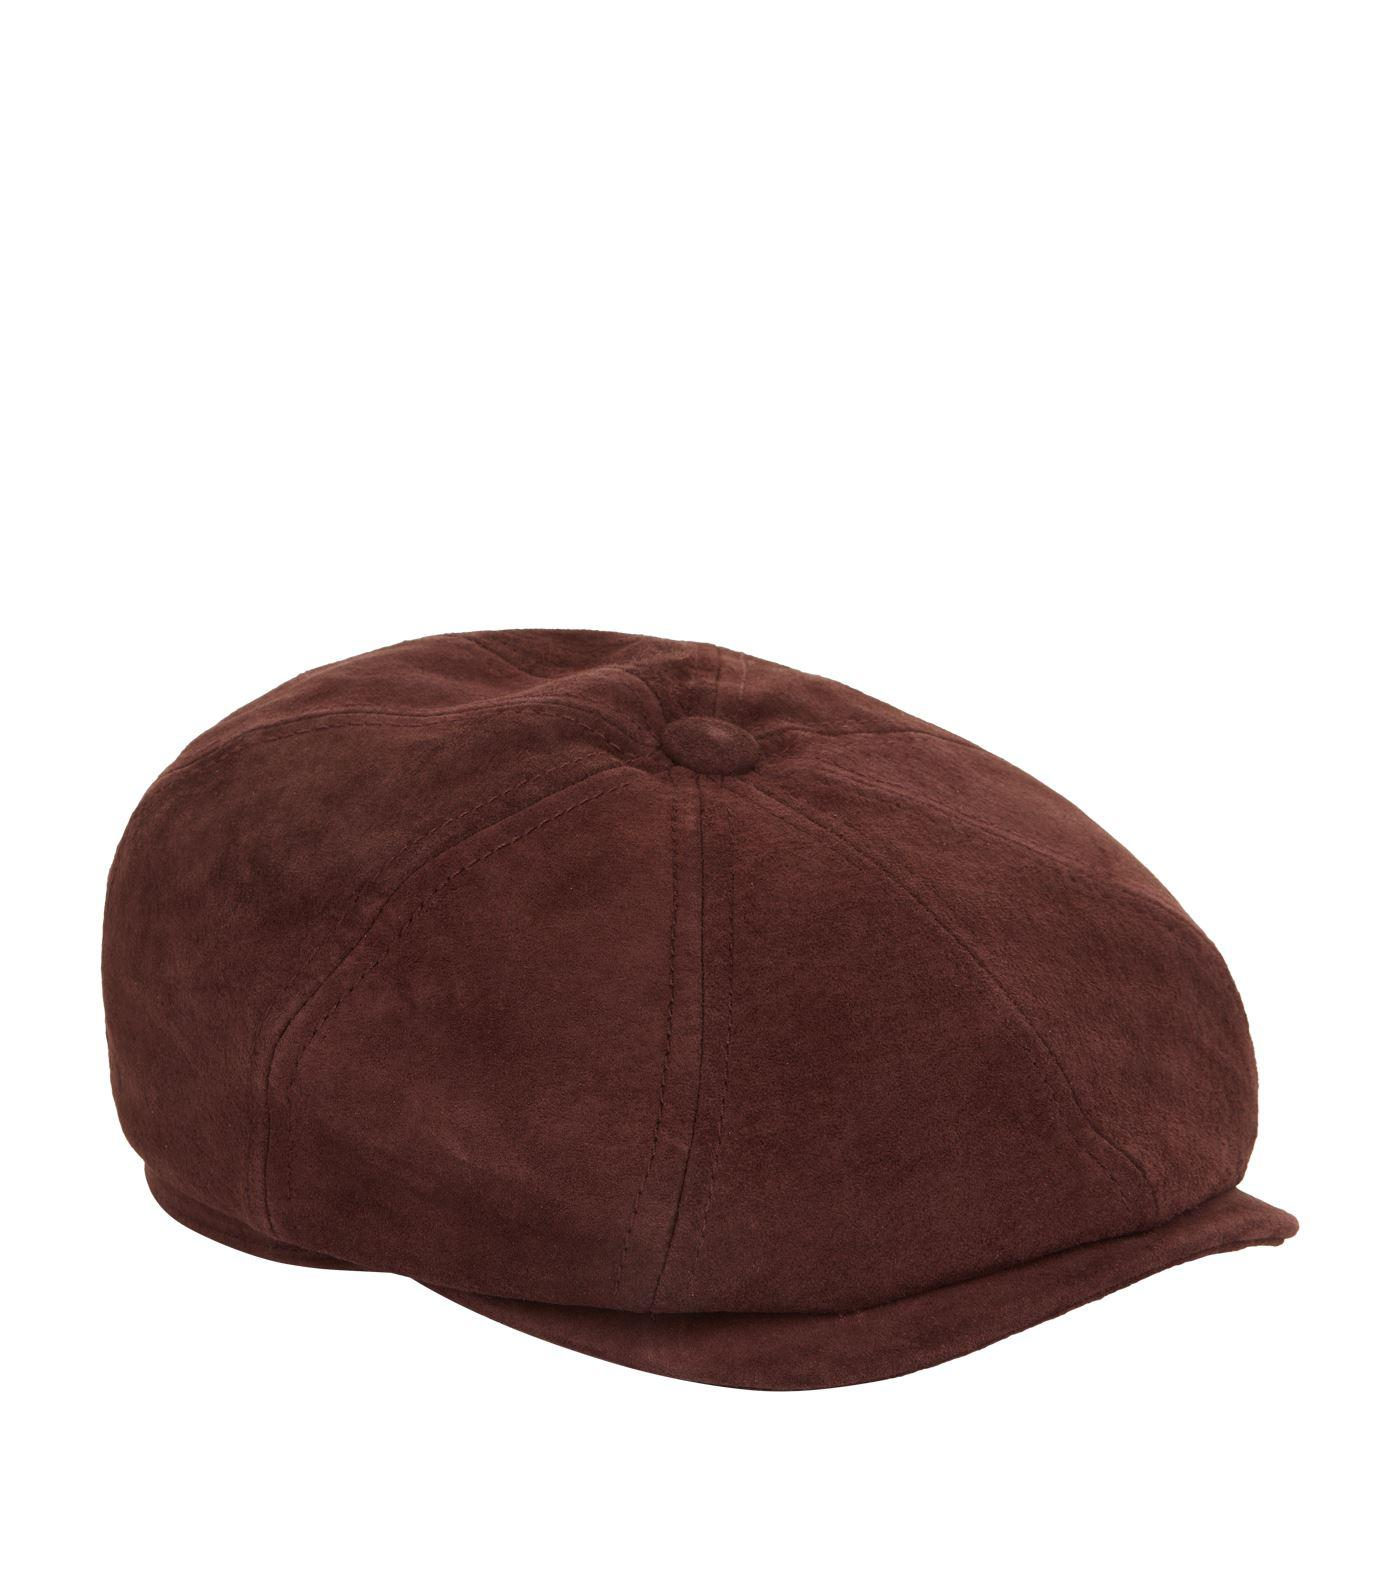 Lyst - Stetson Hatteras Leather Flat Cap in Brown for Men 0009651088c